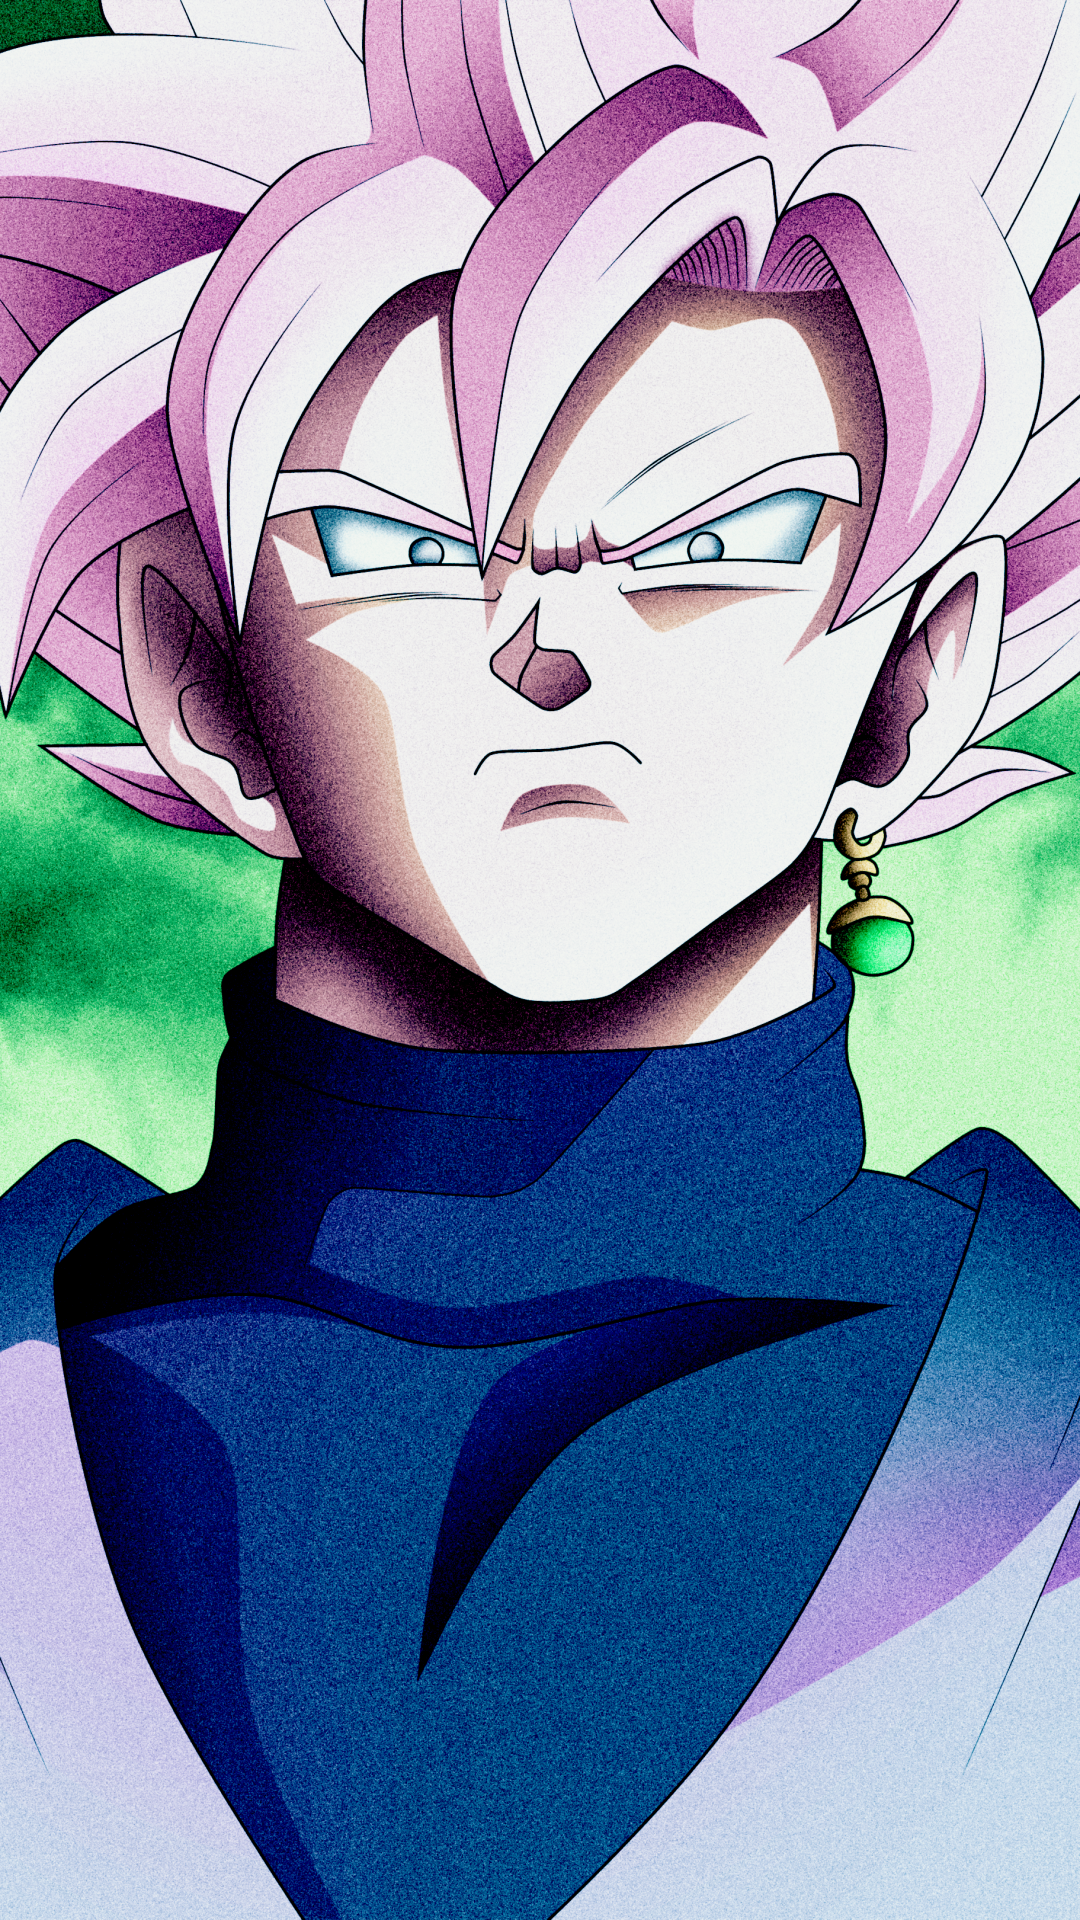 Anime Dragon Ball Super 1080x1920 Wallpaper Id 691925 Mobile Abyss